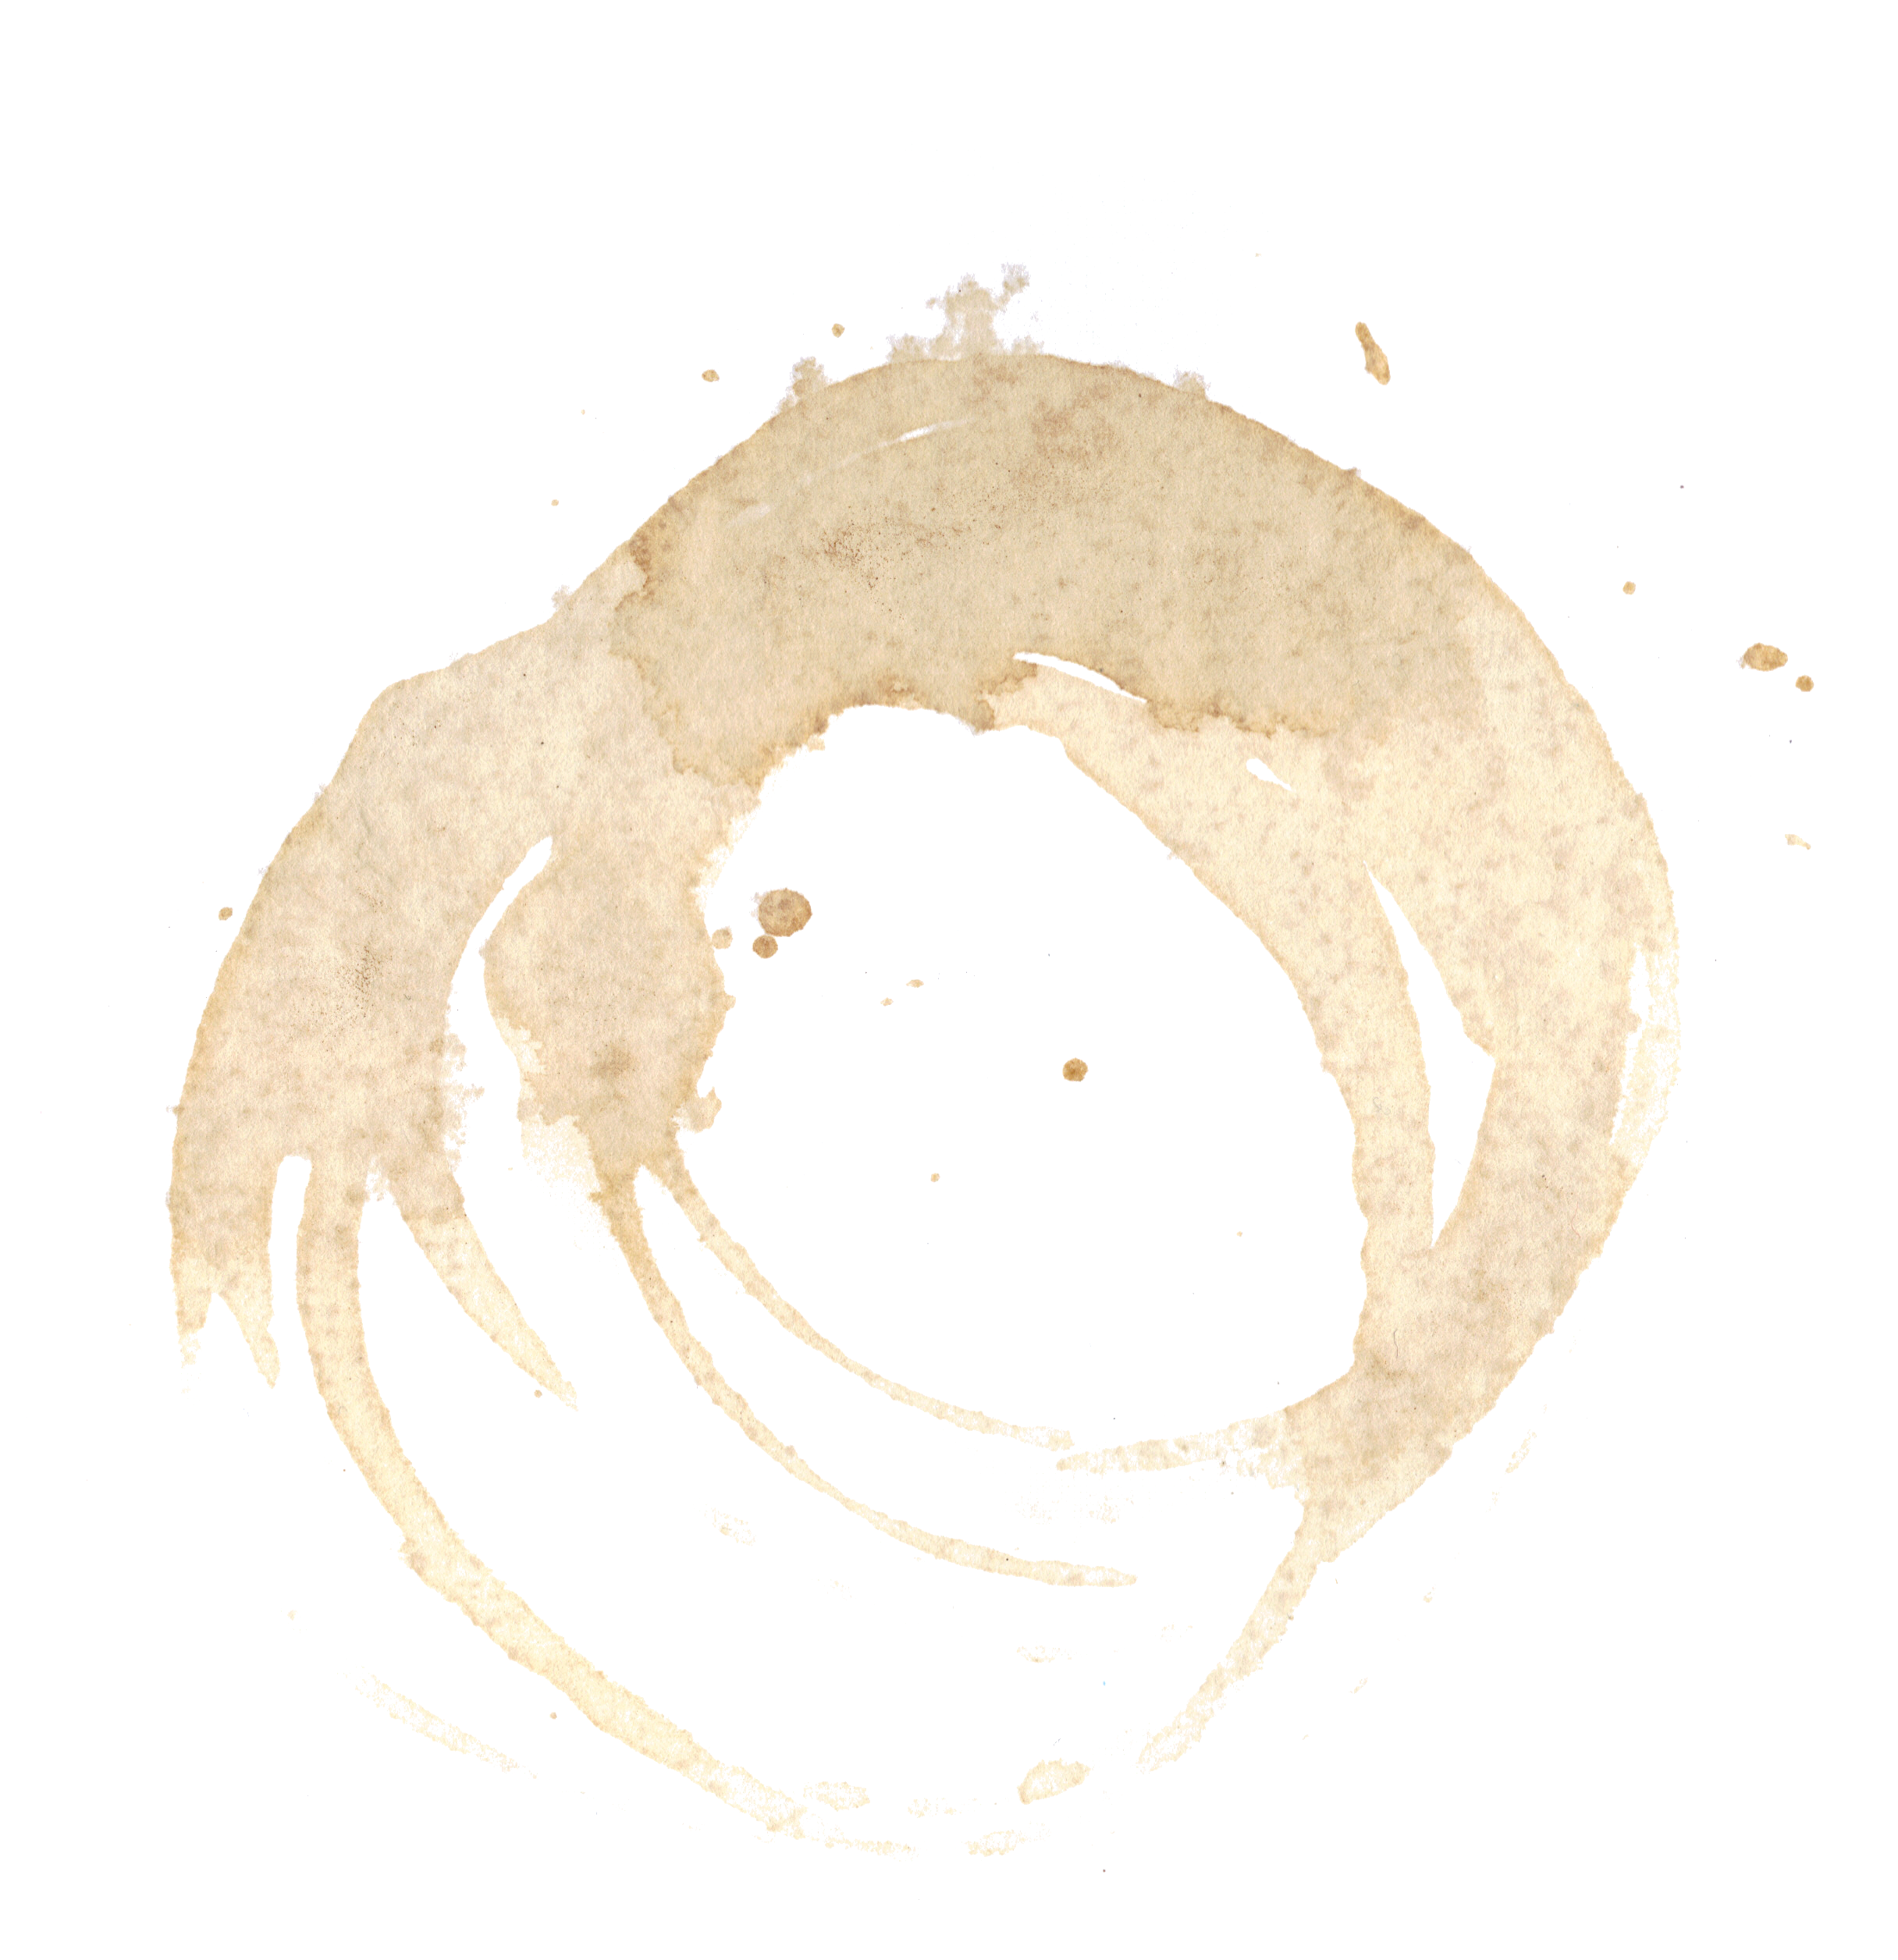 8 Coffee Stain PNG Image Transparent